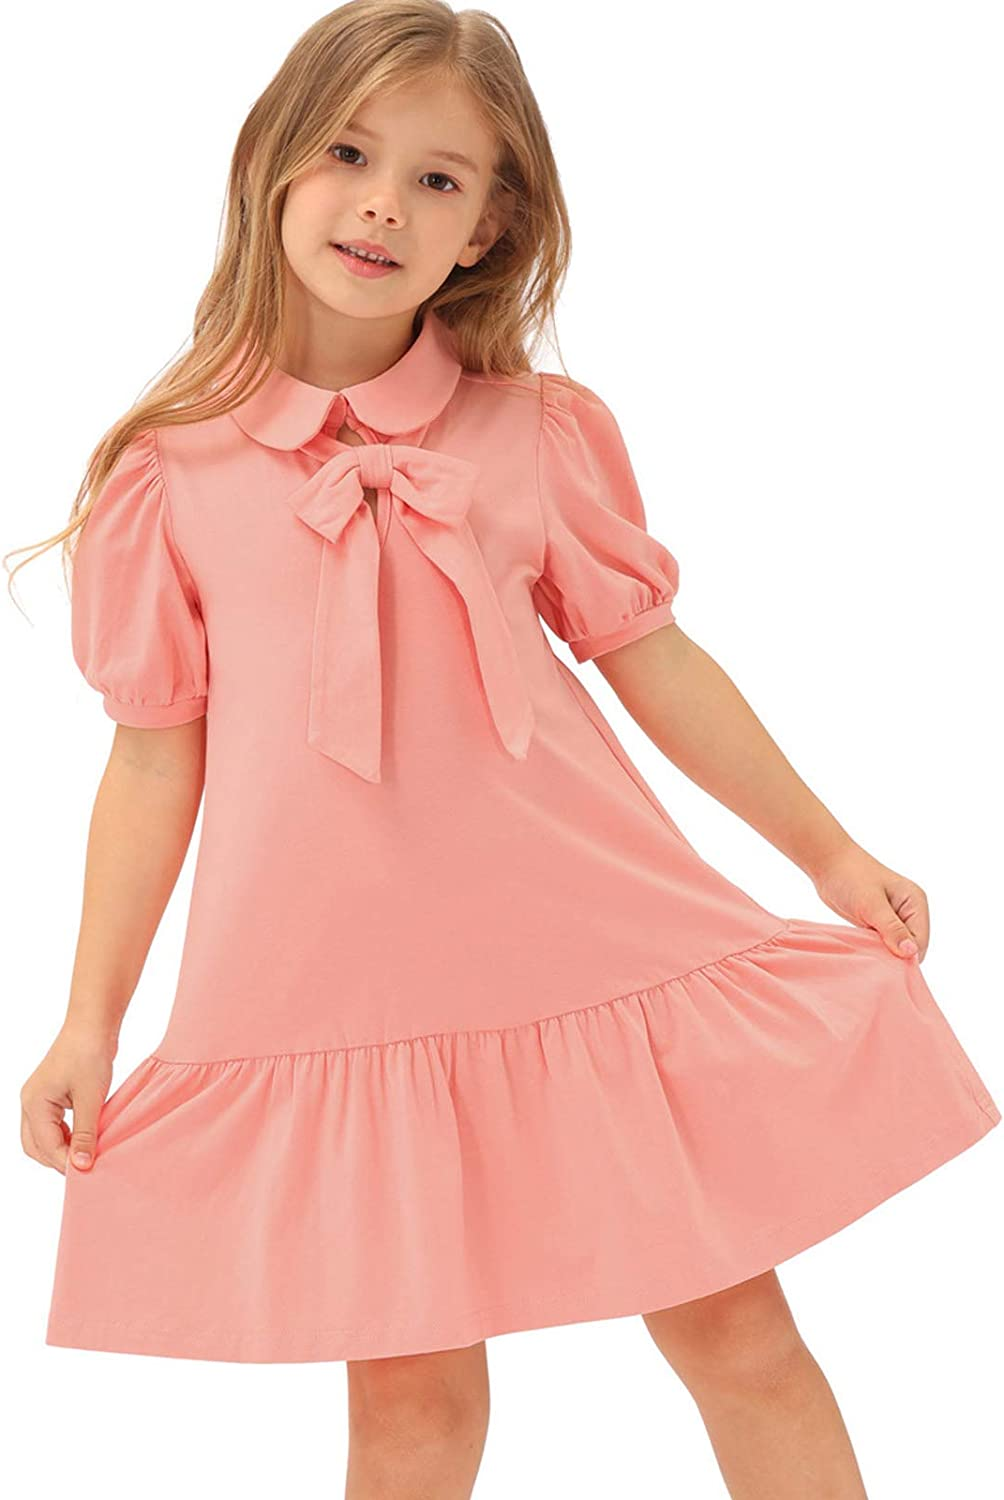 Vintage Style Children's Clothing: Girls, Boys, Baby, Toddler Belle Poque Girls Cotton Dress with Bow and Collar Tiered School Uniforms Dress $19.99 AT vintagedancer.com